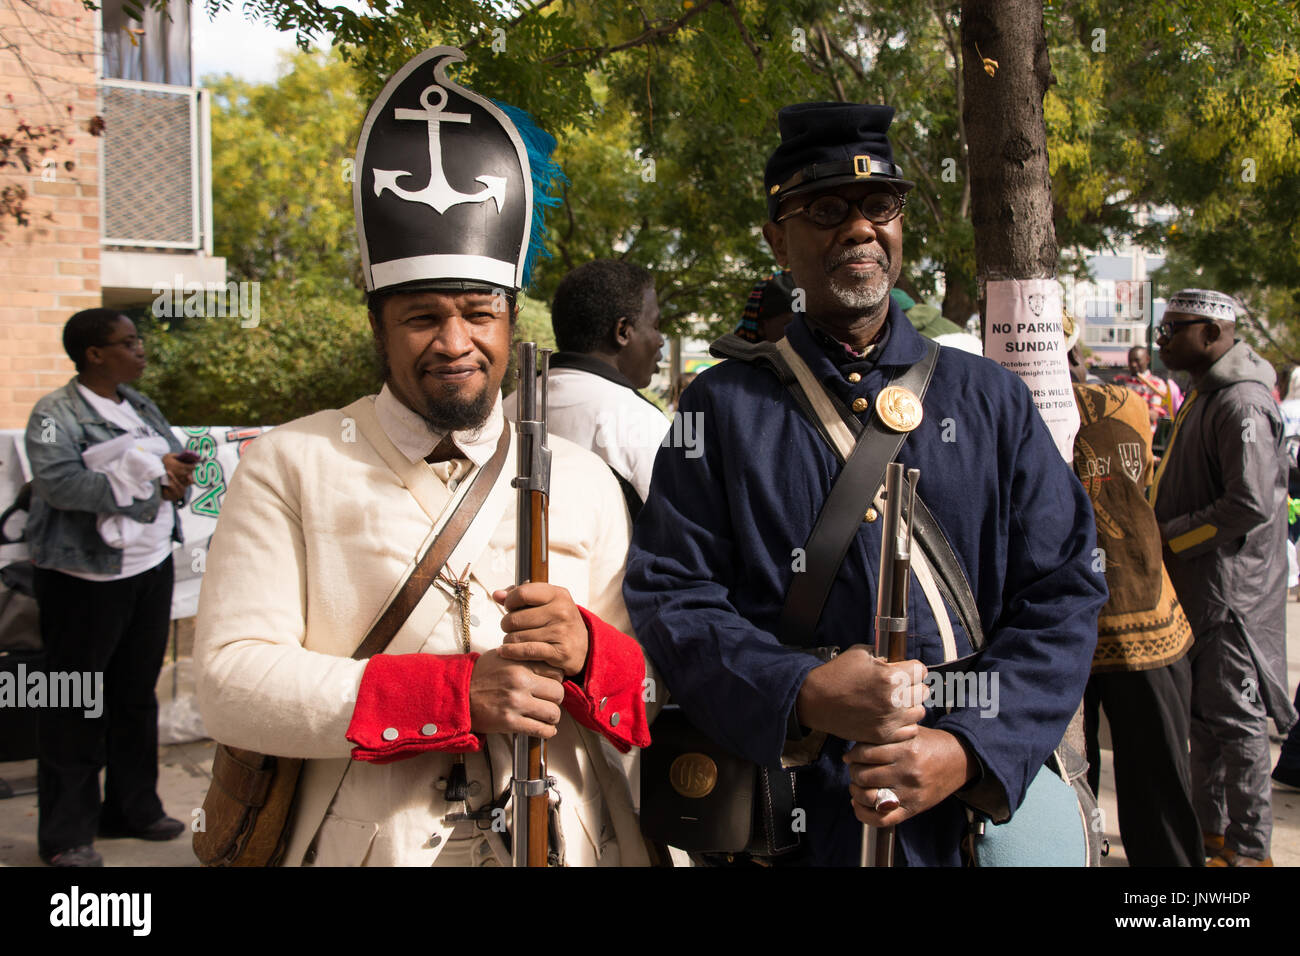 African-American Revolutionary War (left) and Civil War (right) reenactors join the African Day Parade in Harlem. - Stock Image